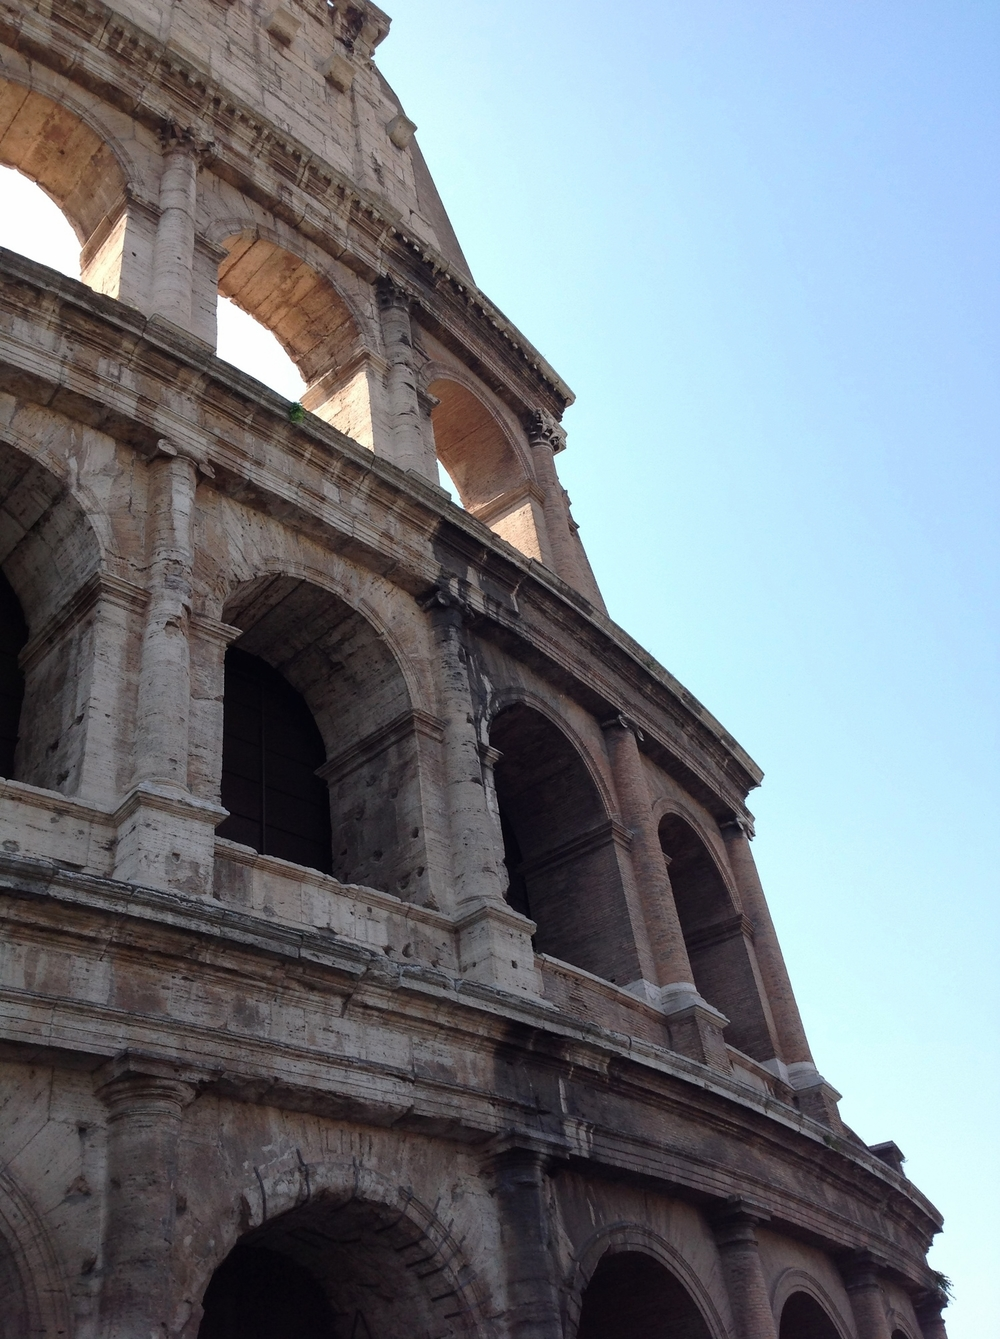 Il Colosseo (The Colosseum)